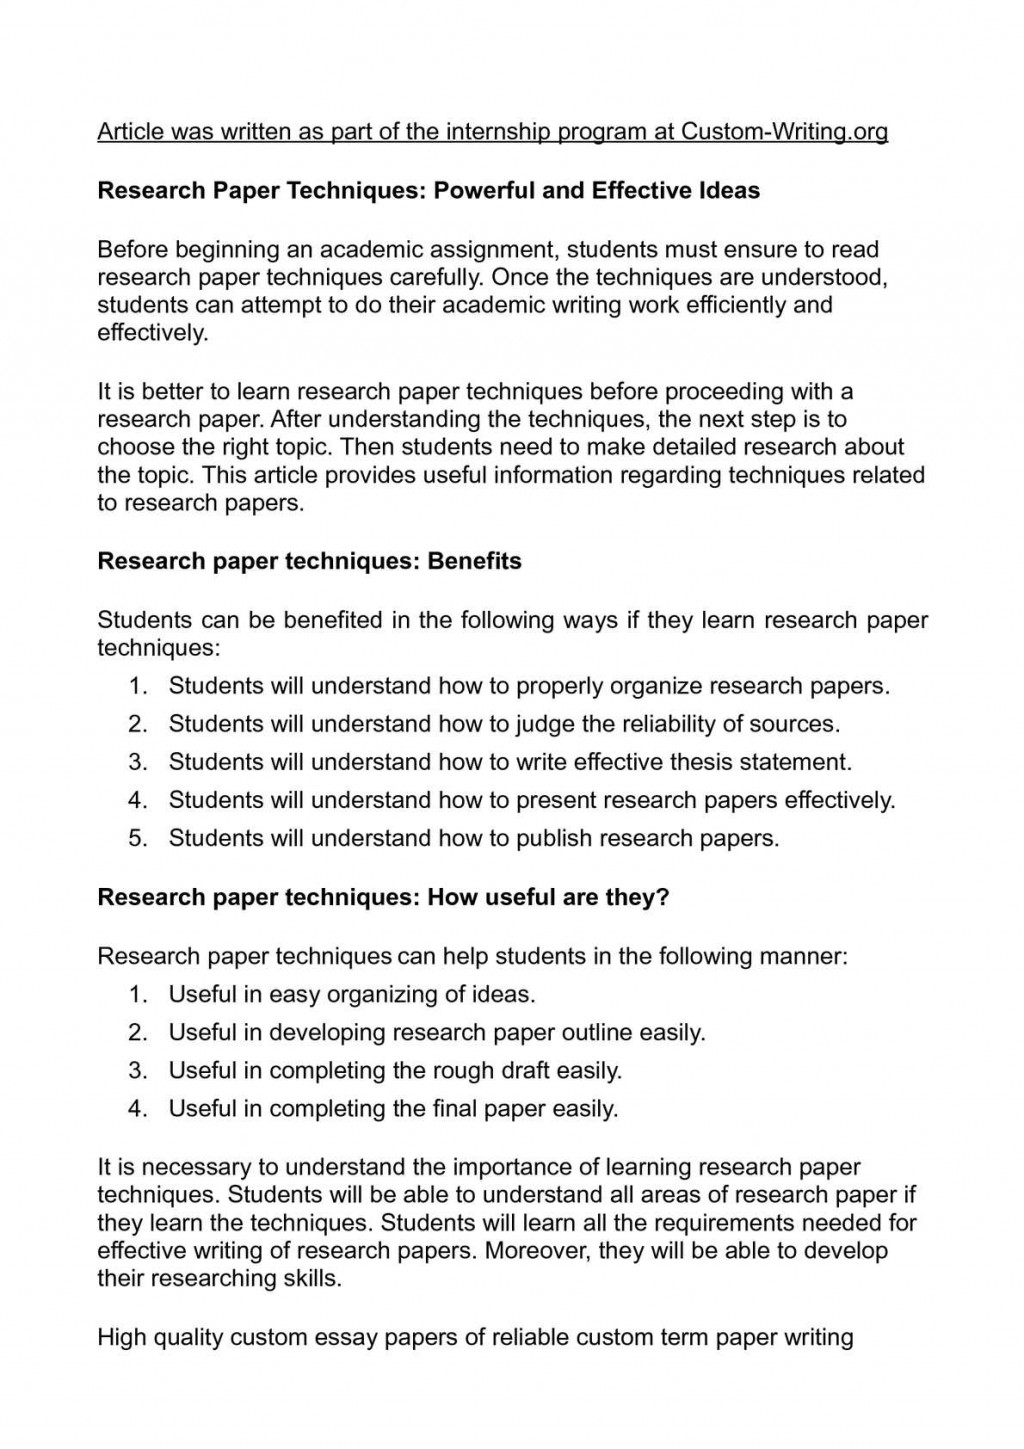 006 P1 Research Paper Organizing Unforgettable A Outline Information In An For Large